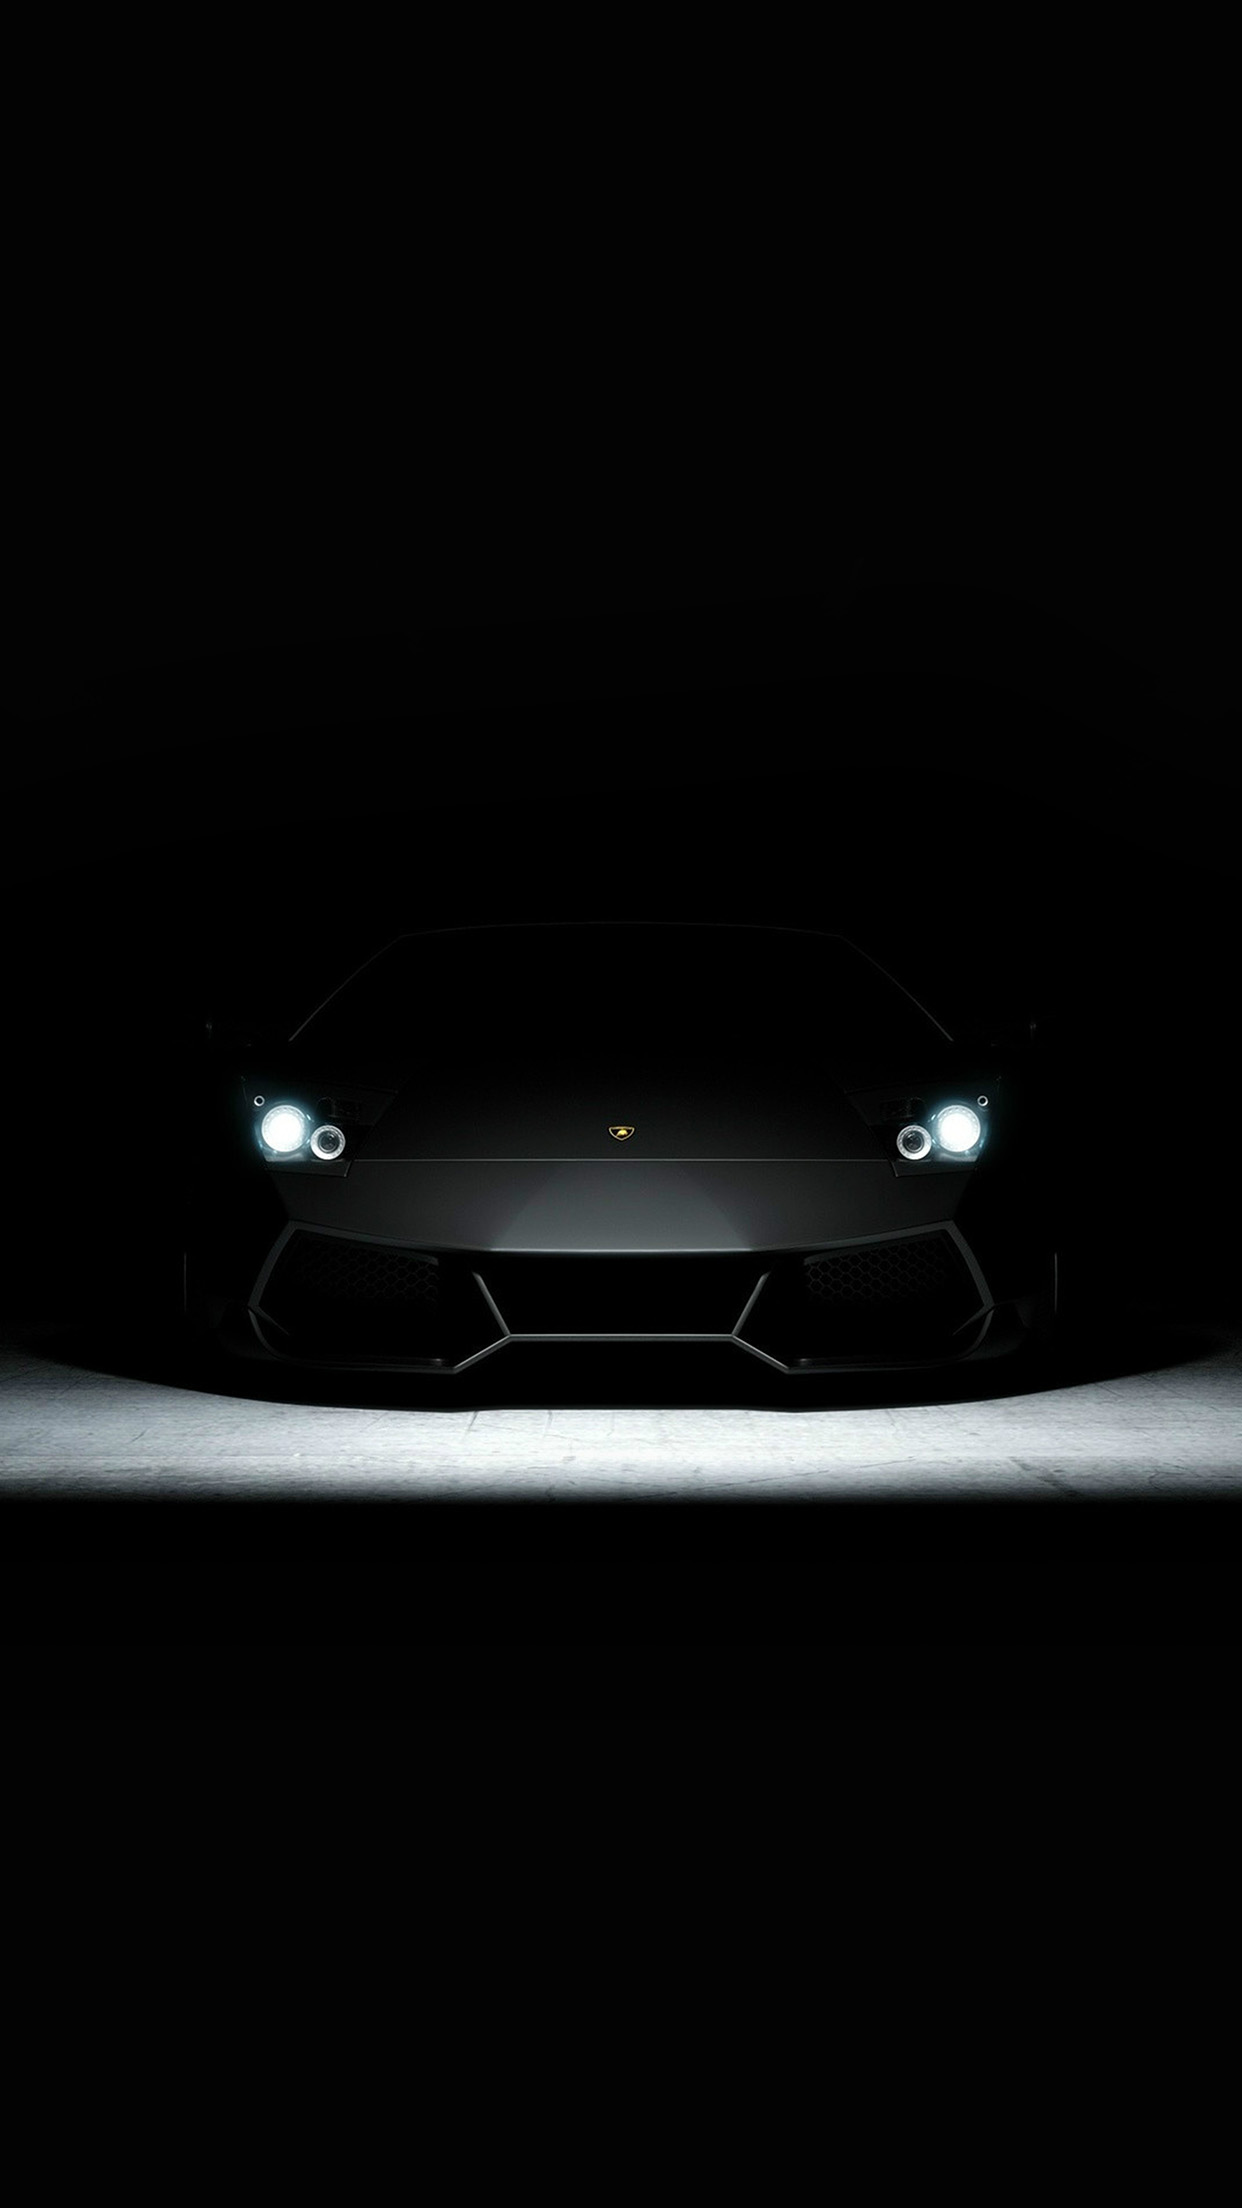 Iphone7papers Com Iphone7 Wallpaper Bd23 Car Dark Lamborghini